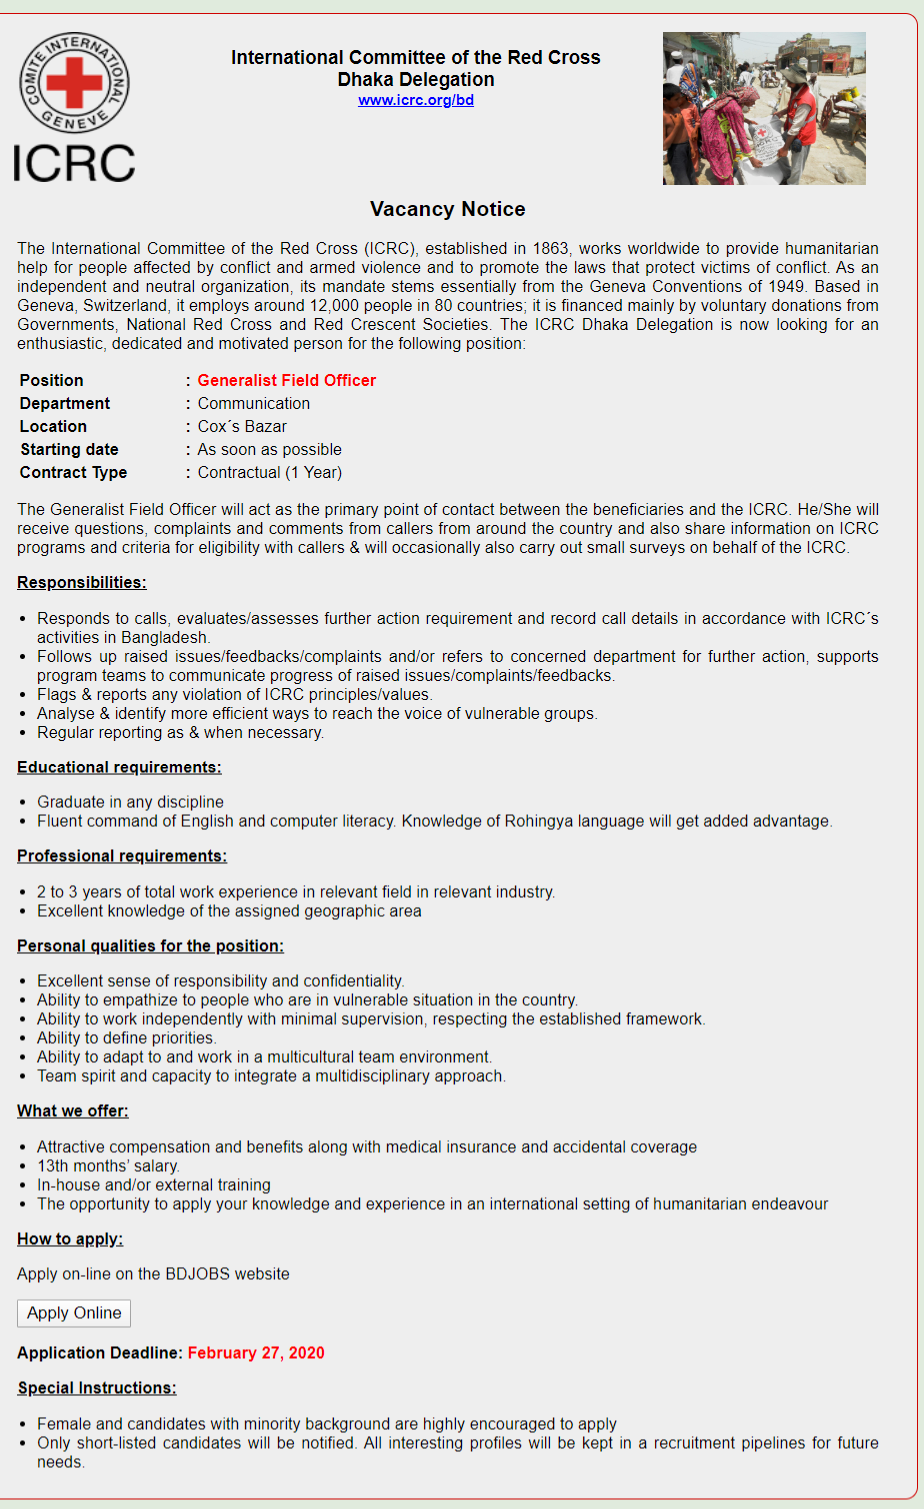 International Committee of the Red Cross (ICRC) Job Circular 2020